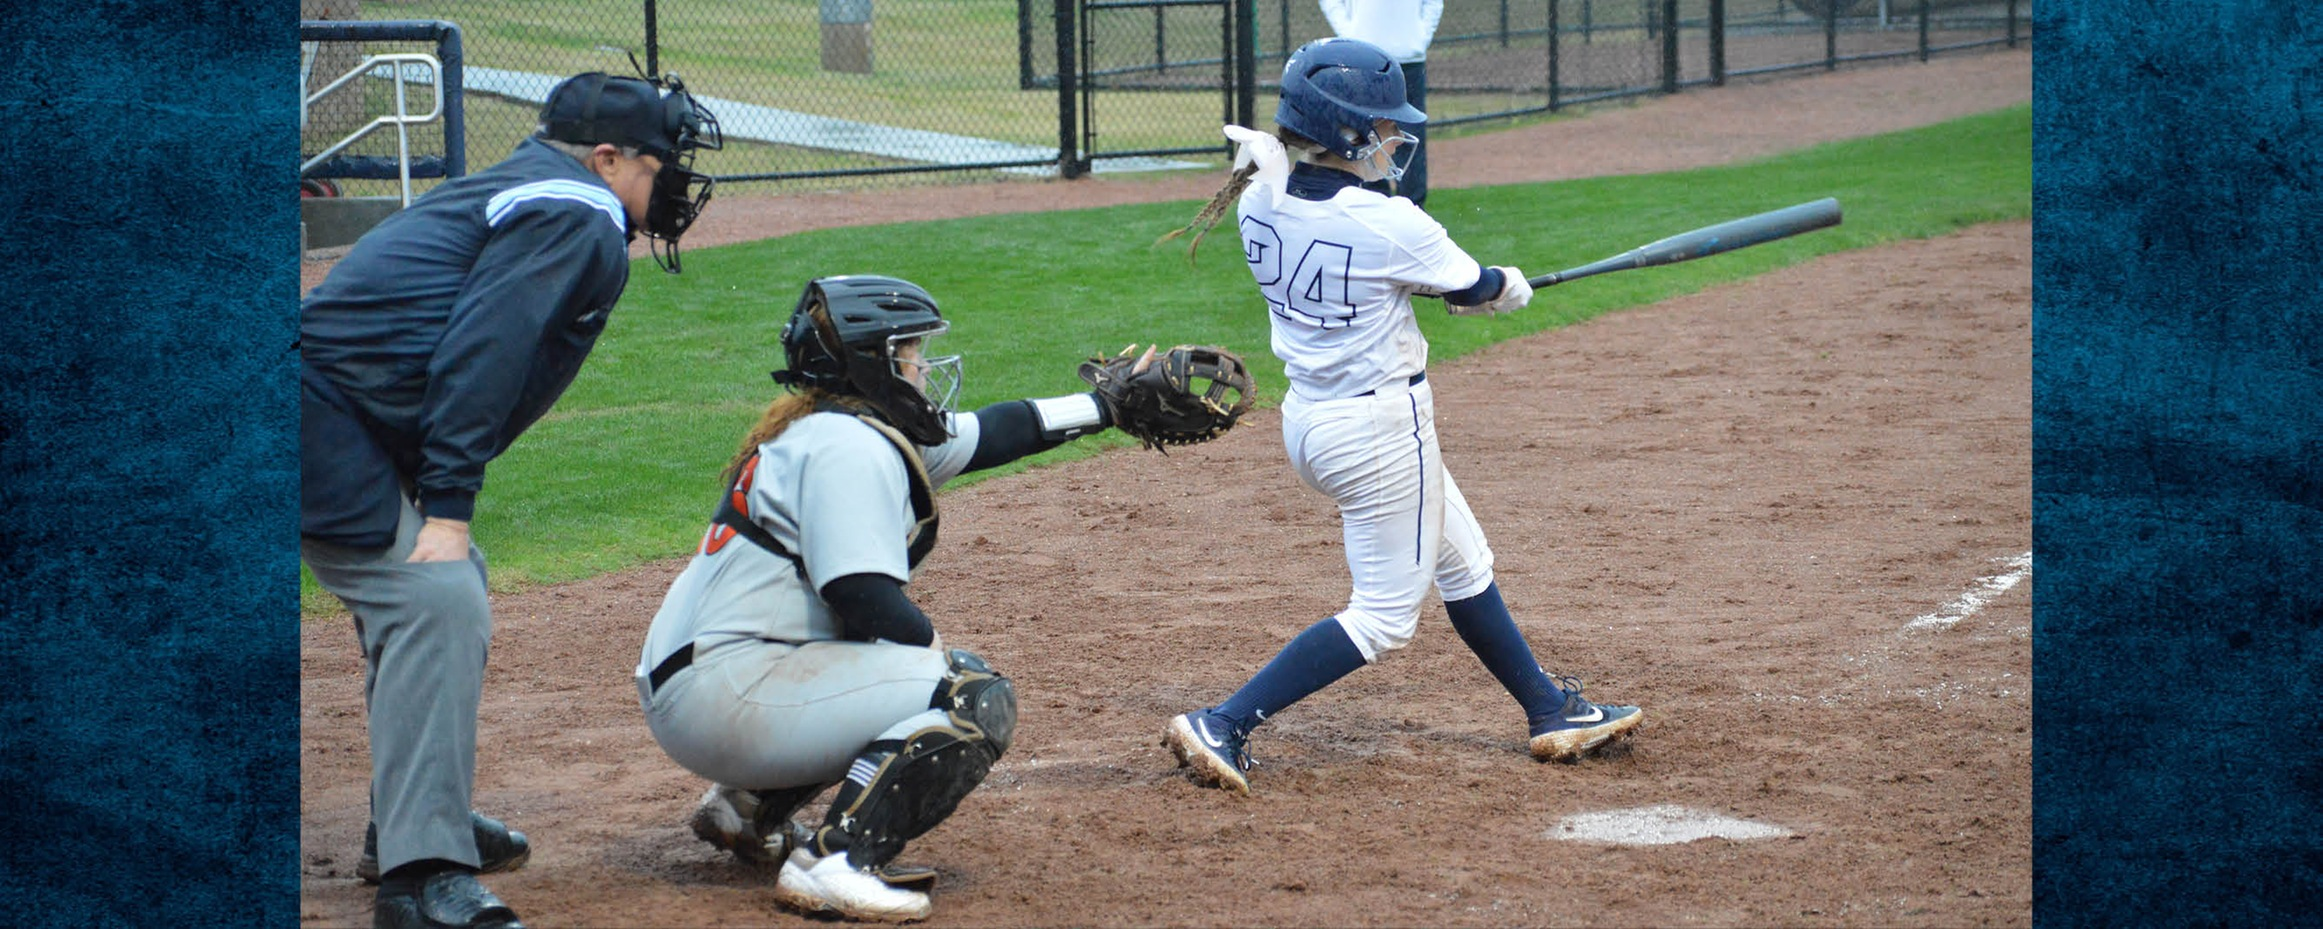 Archer's 2 HR lead Lady Bulldogs to sweep